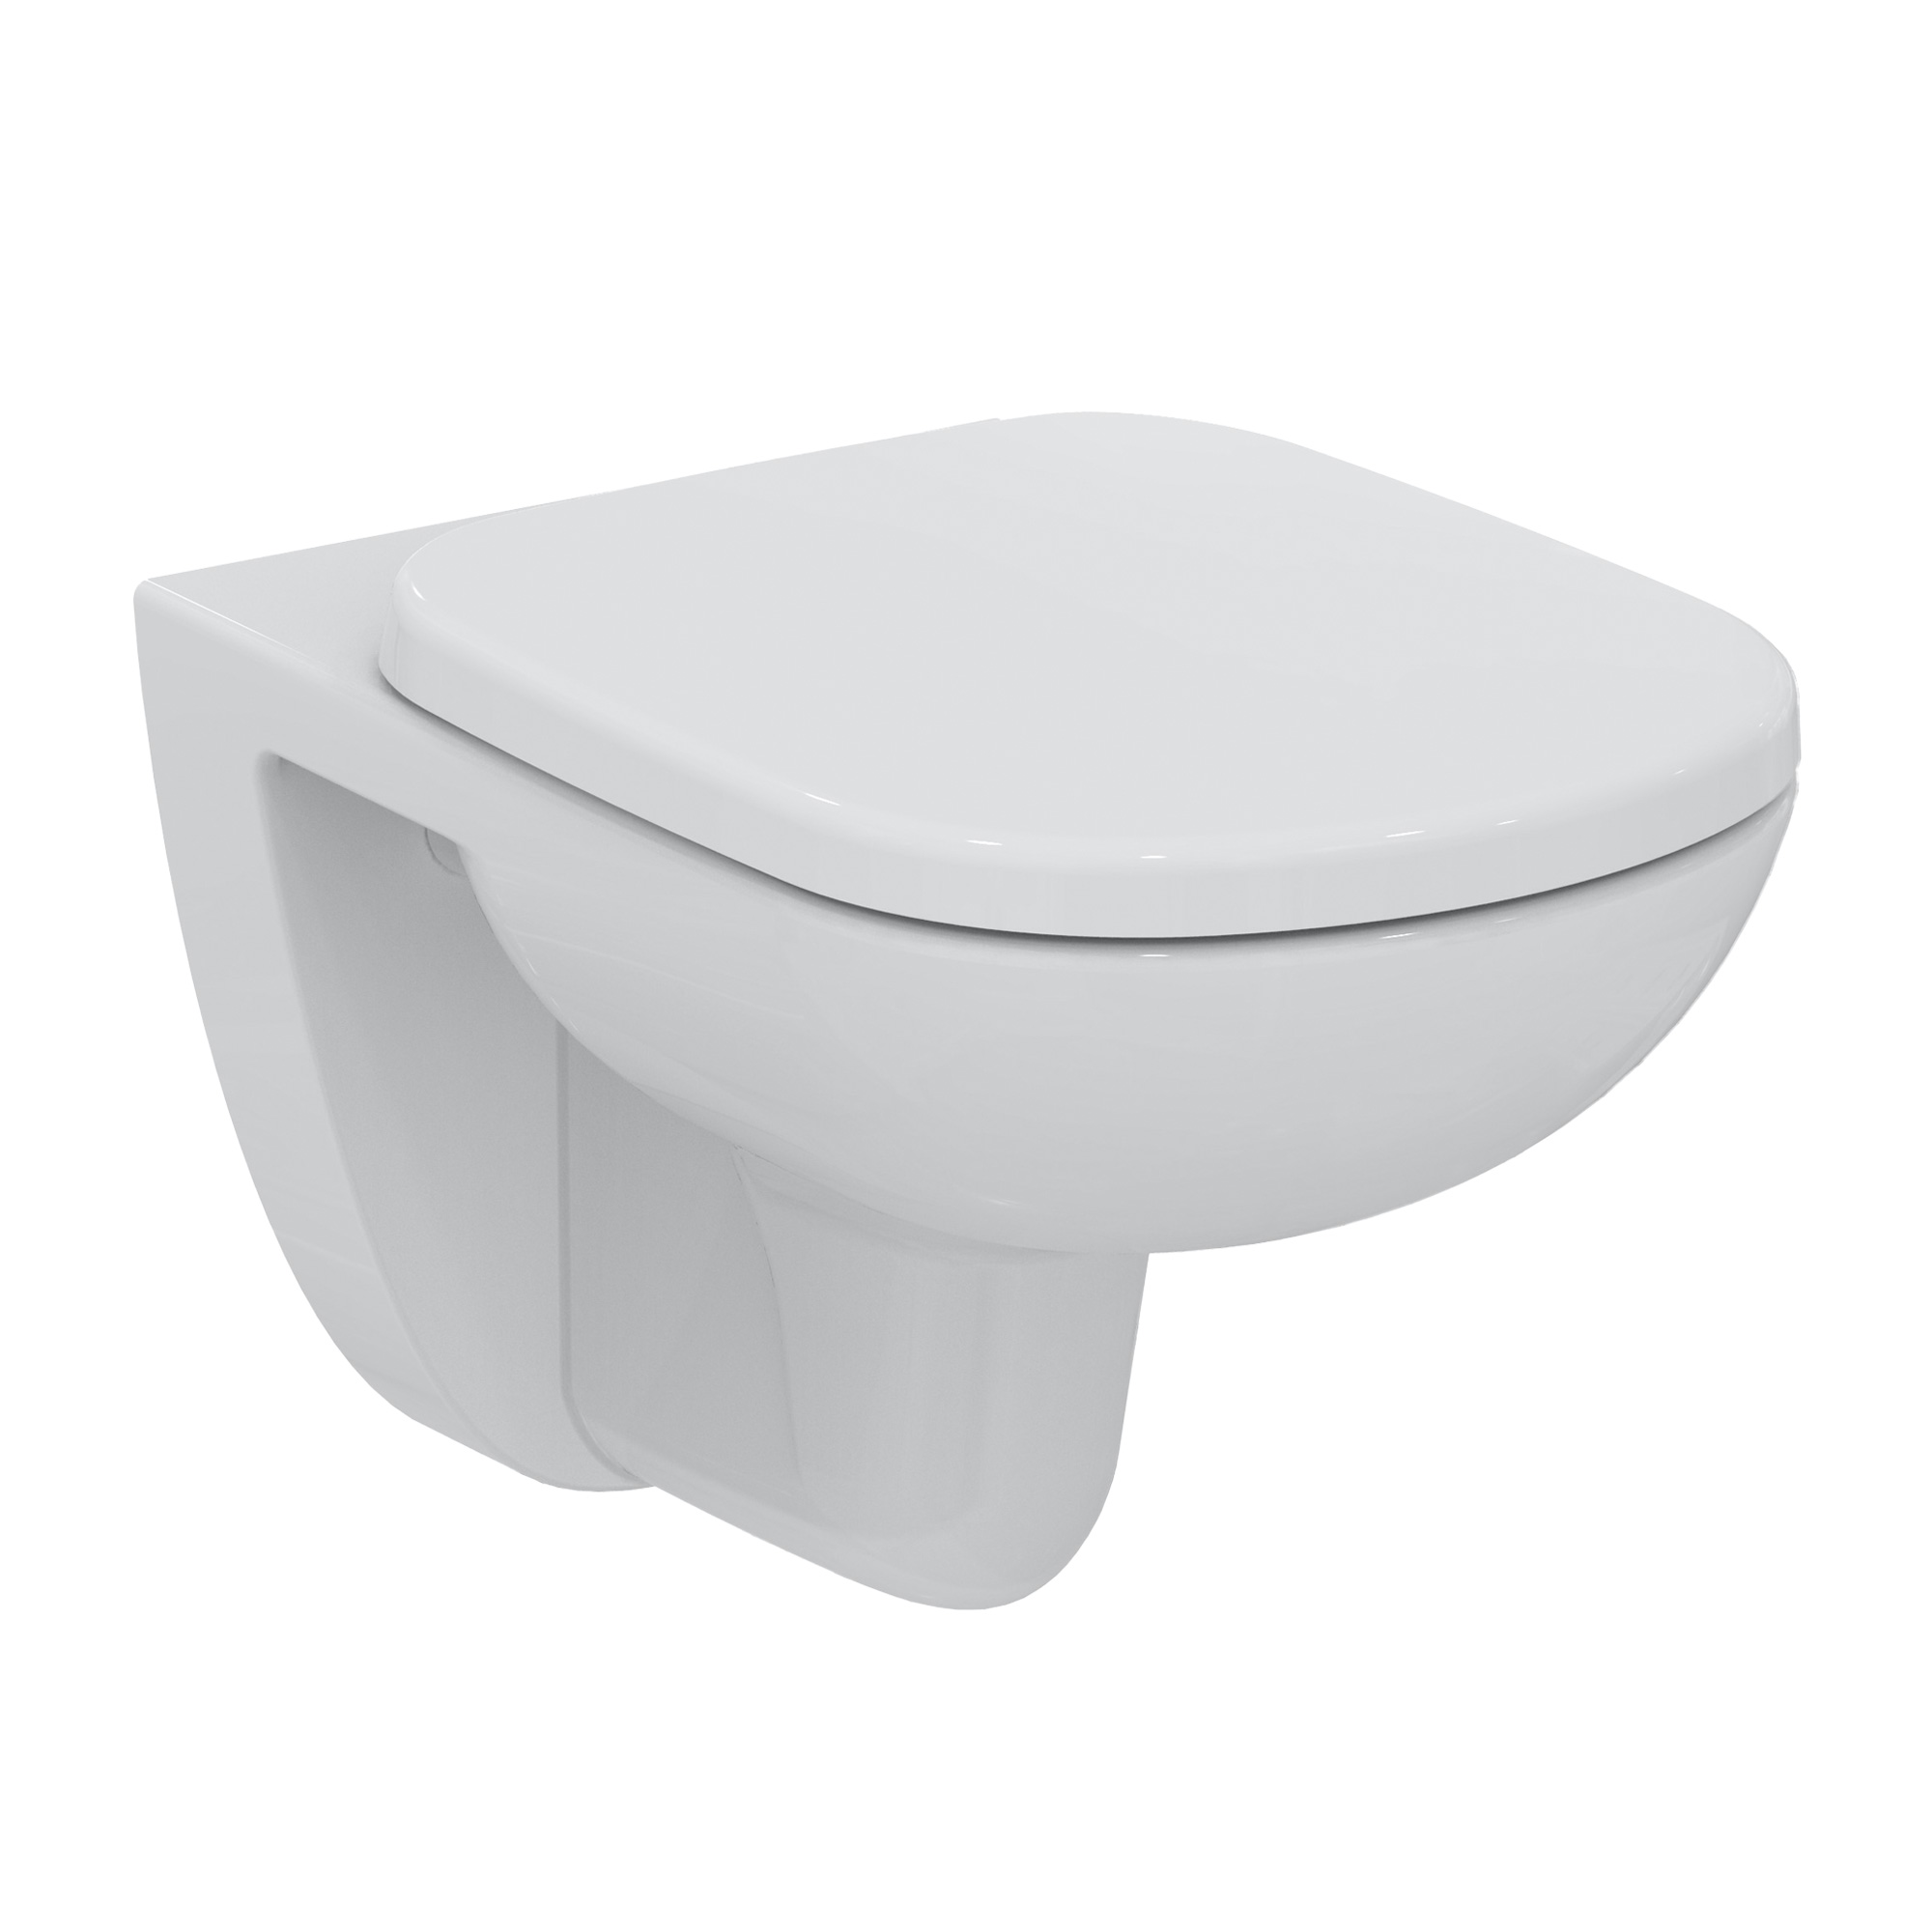 Mounting Urinal White Ideal Standard eurovit incl